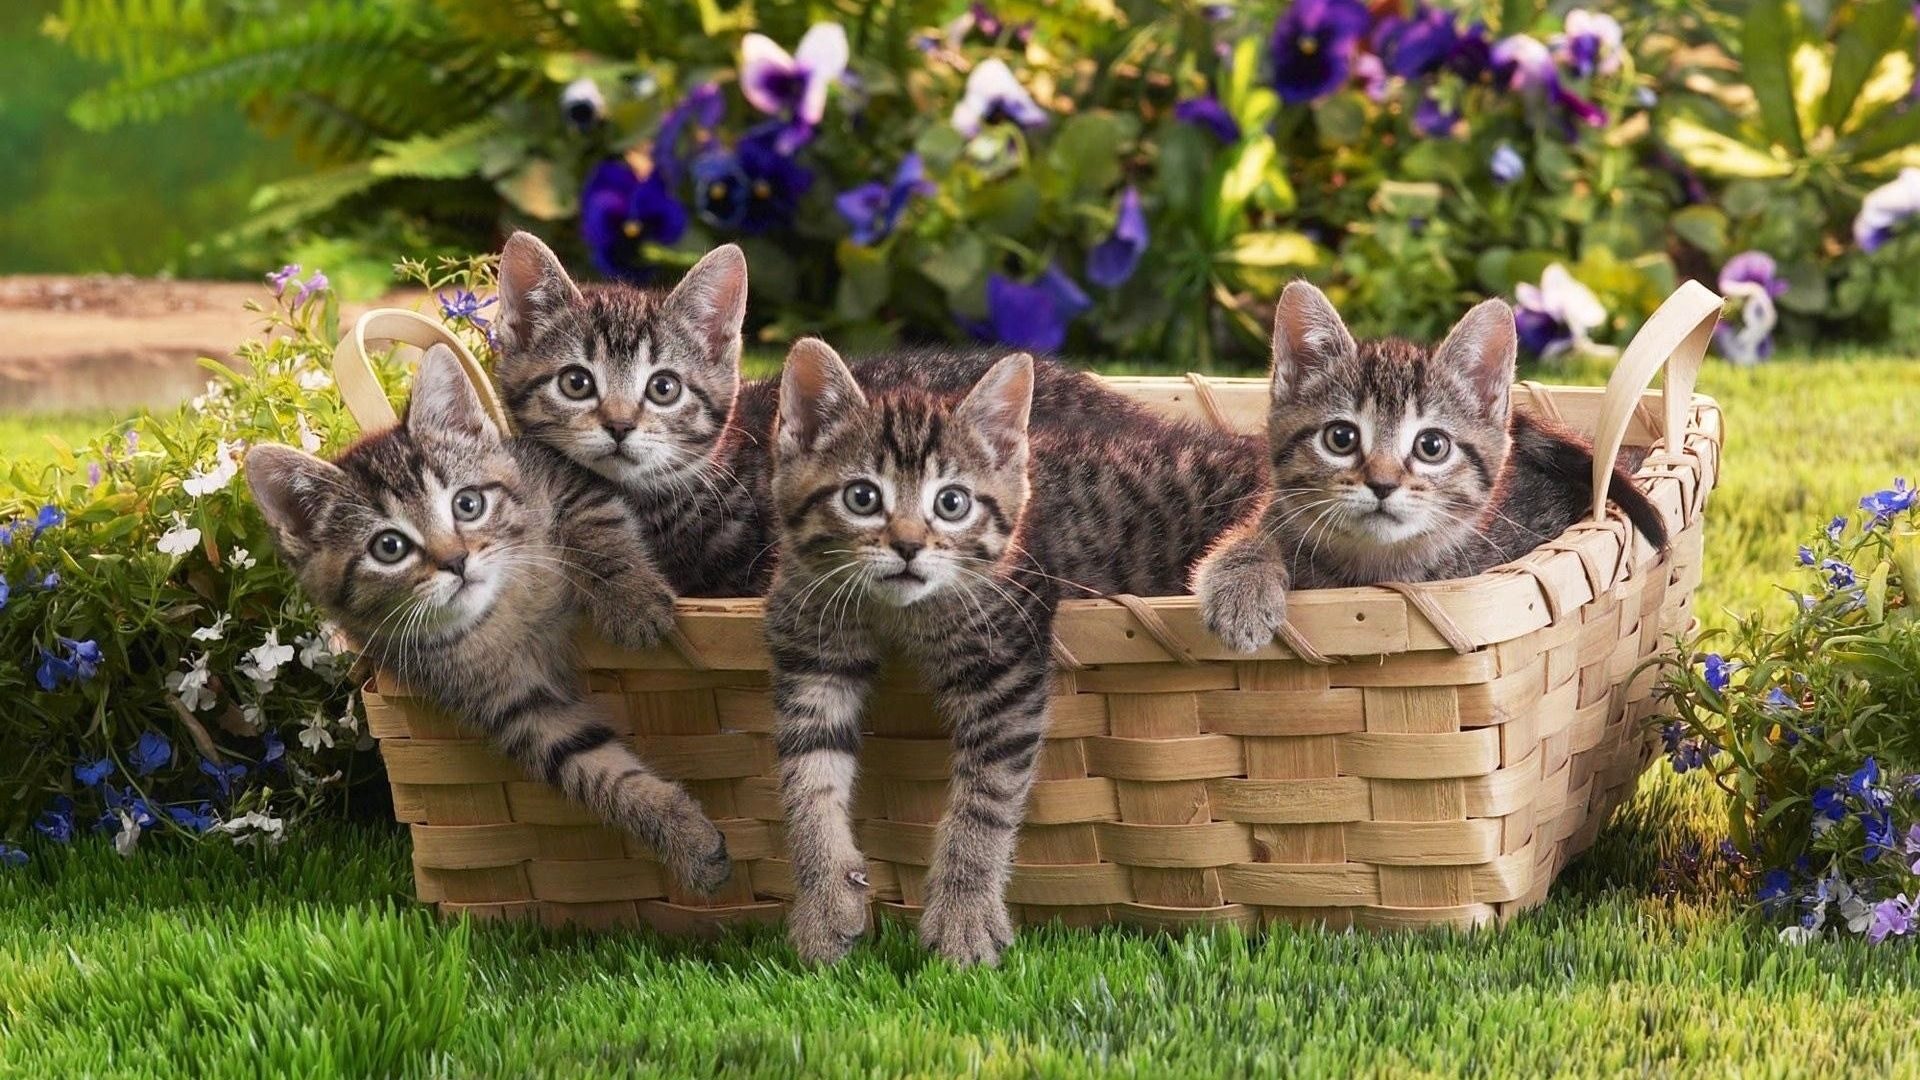 Kittens In A Basket Pictures